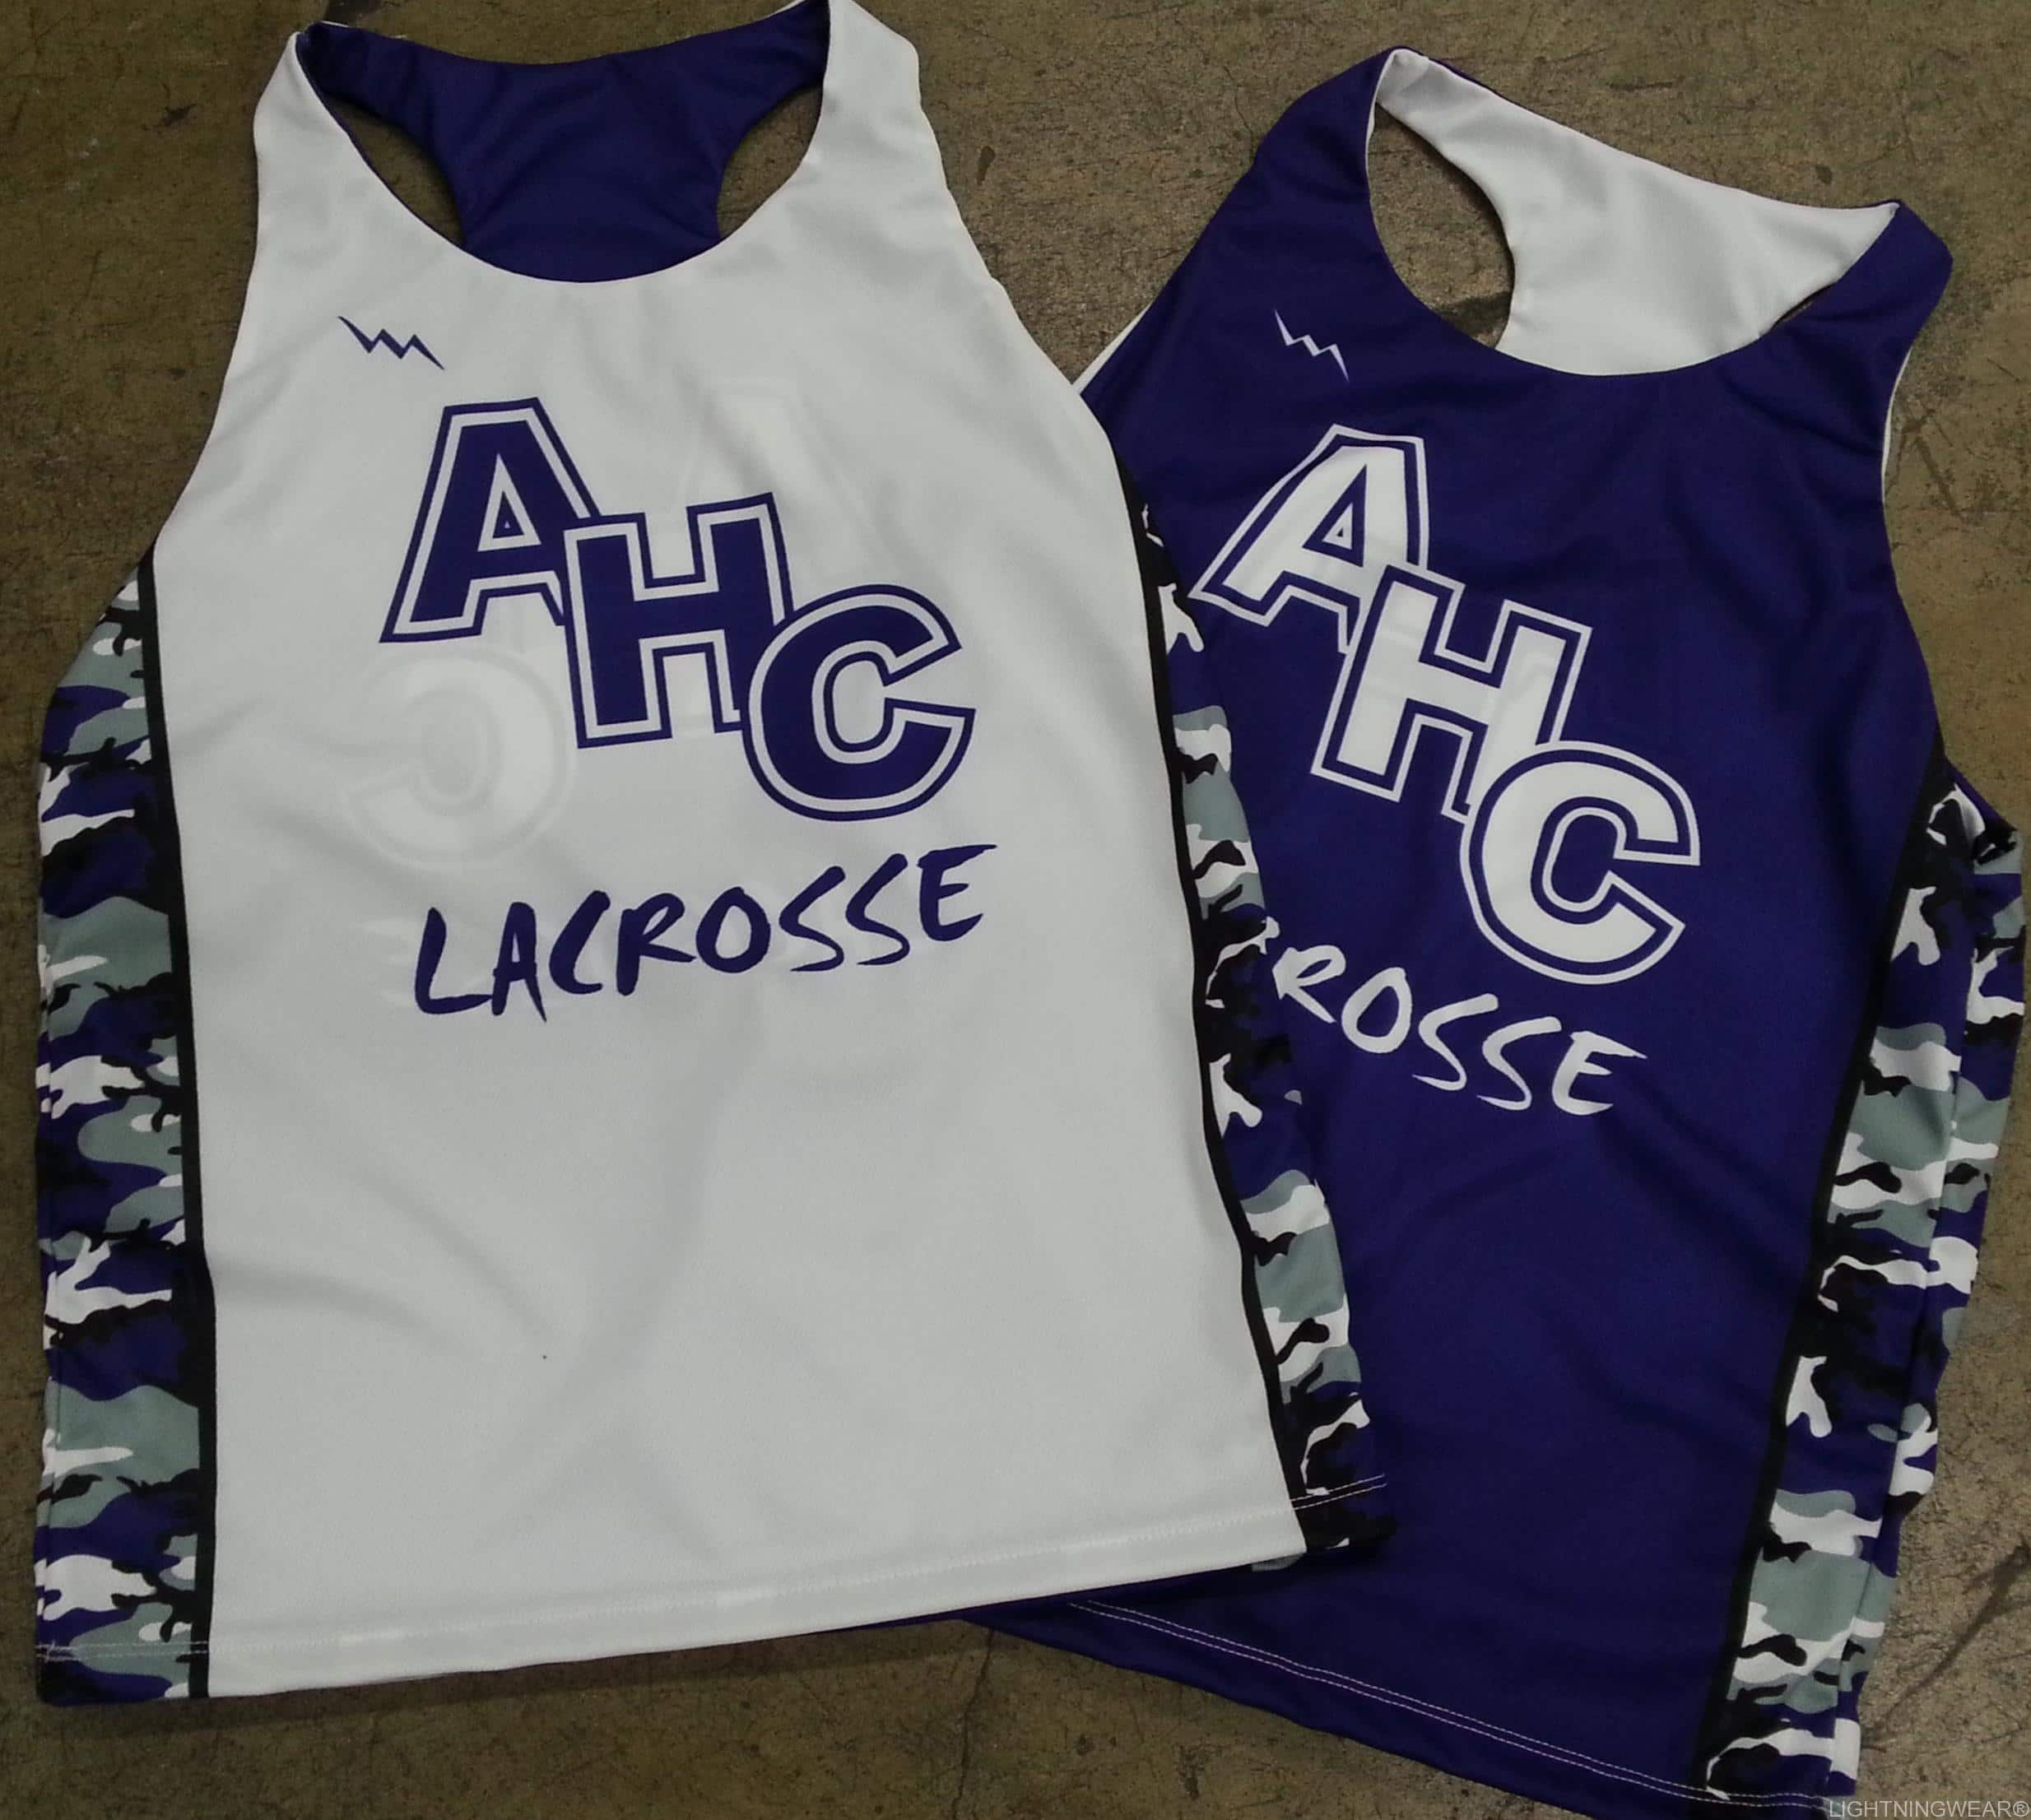 girls camouflage lacrosse uniforms